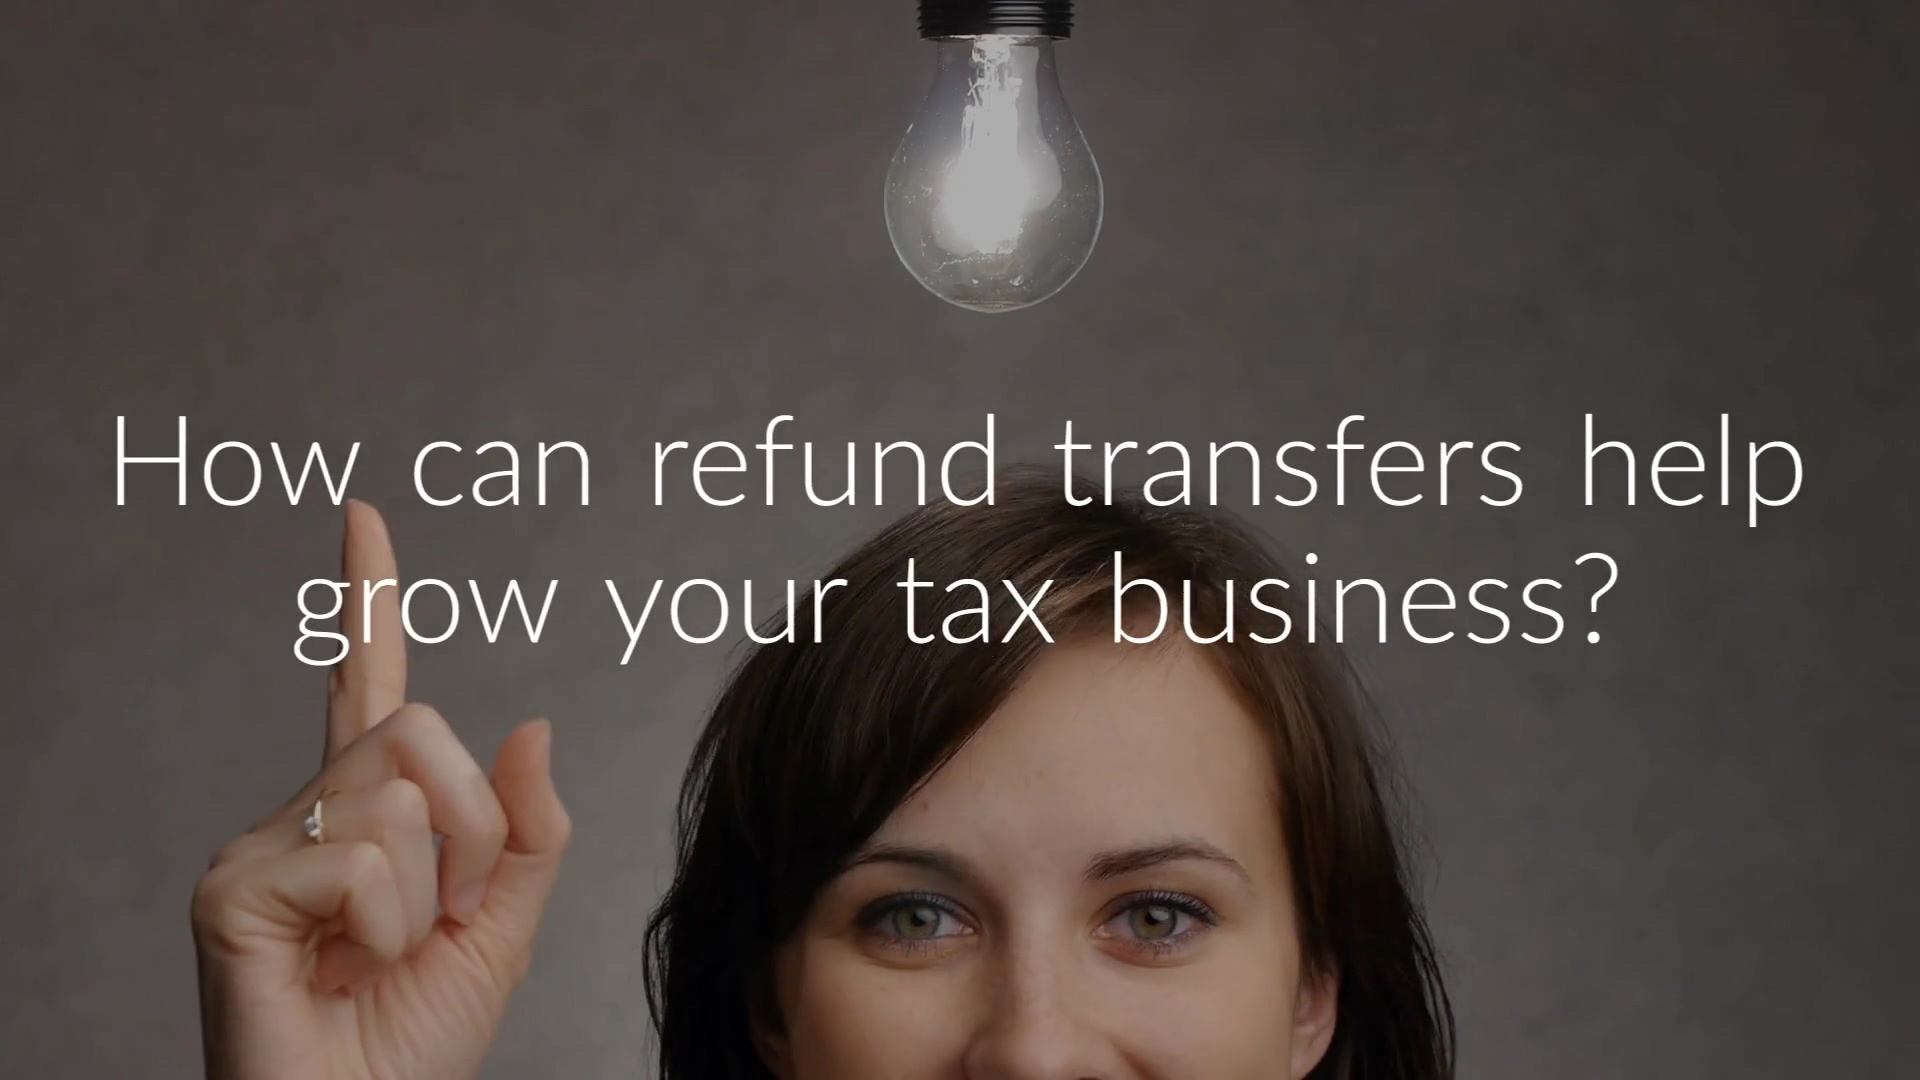 how-can-refund-transfers-grow-your-tax-business (1)-1